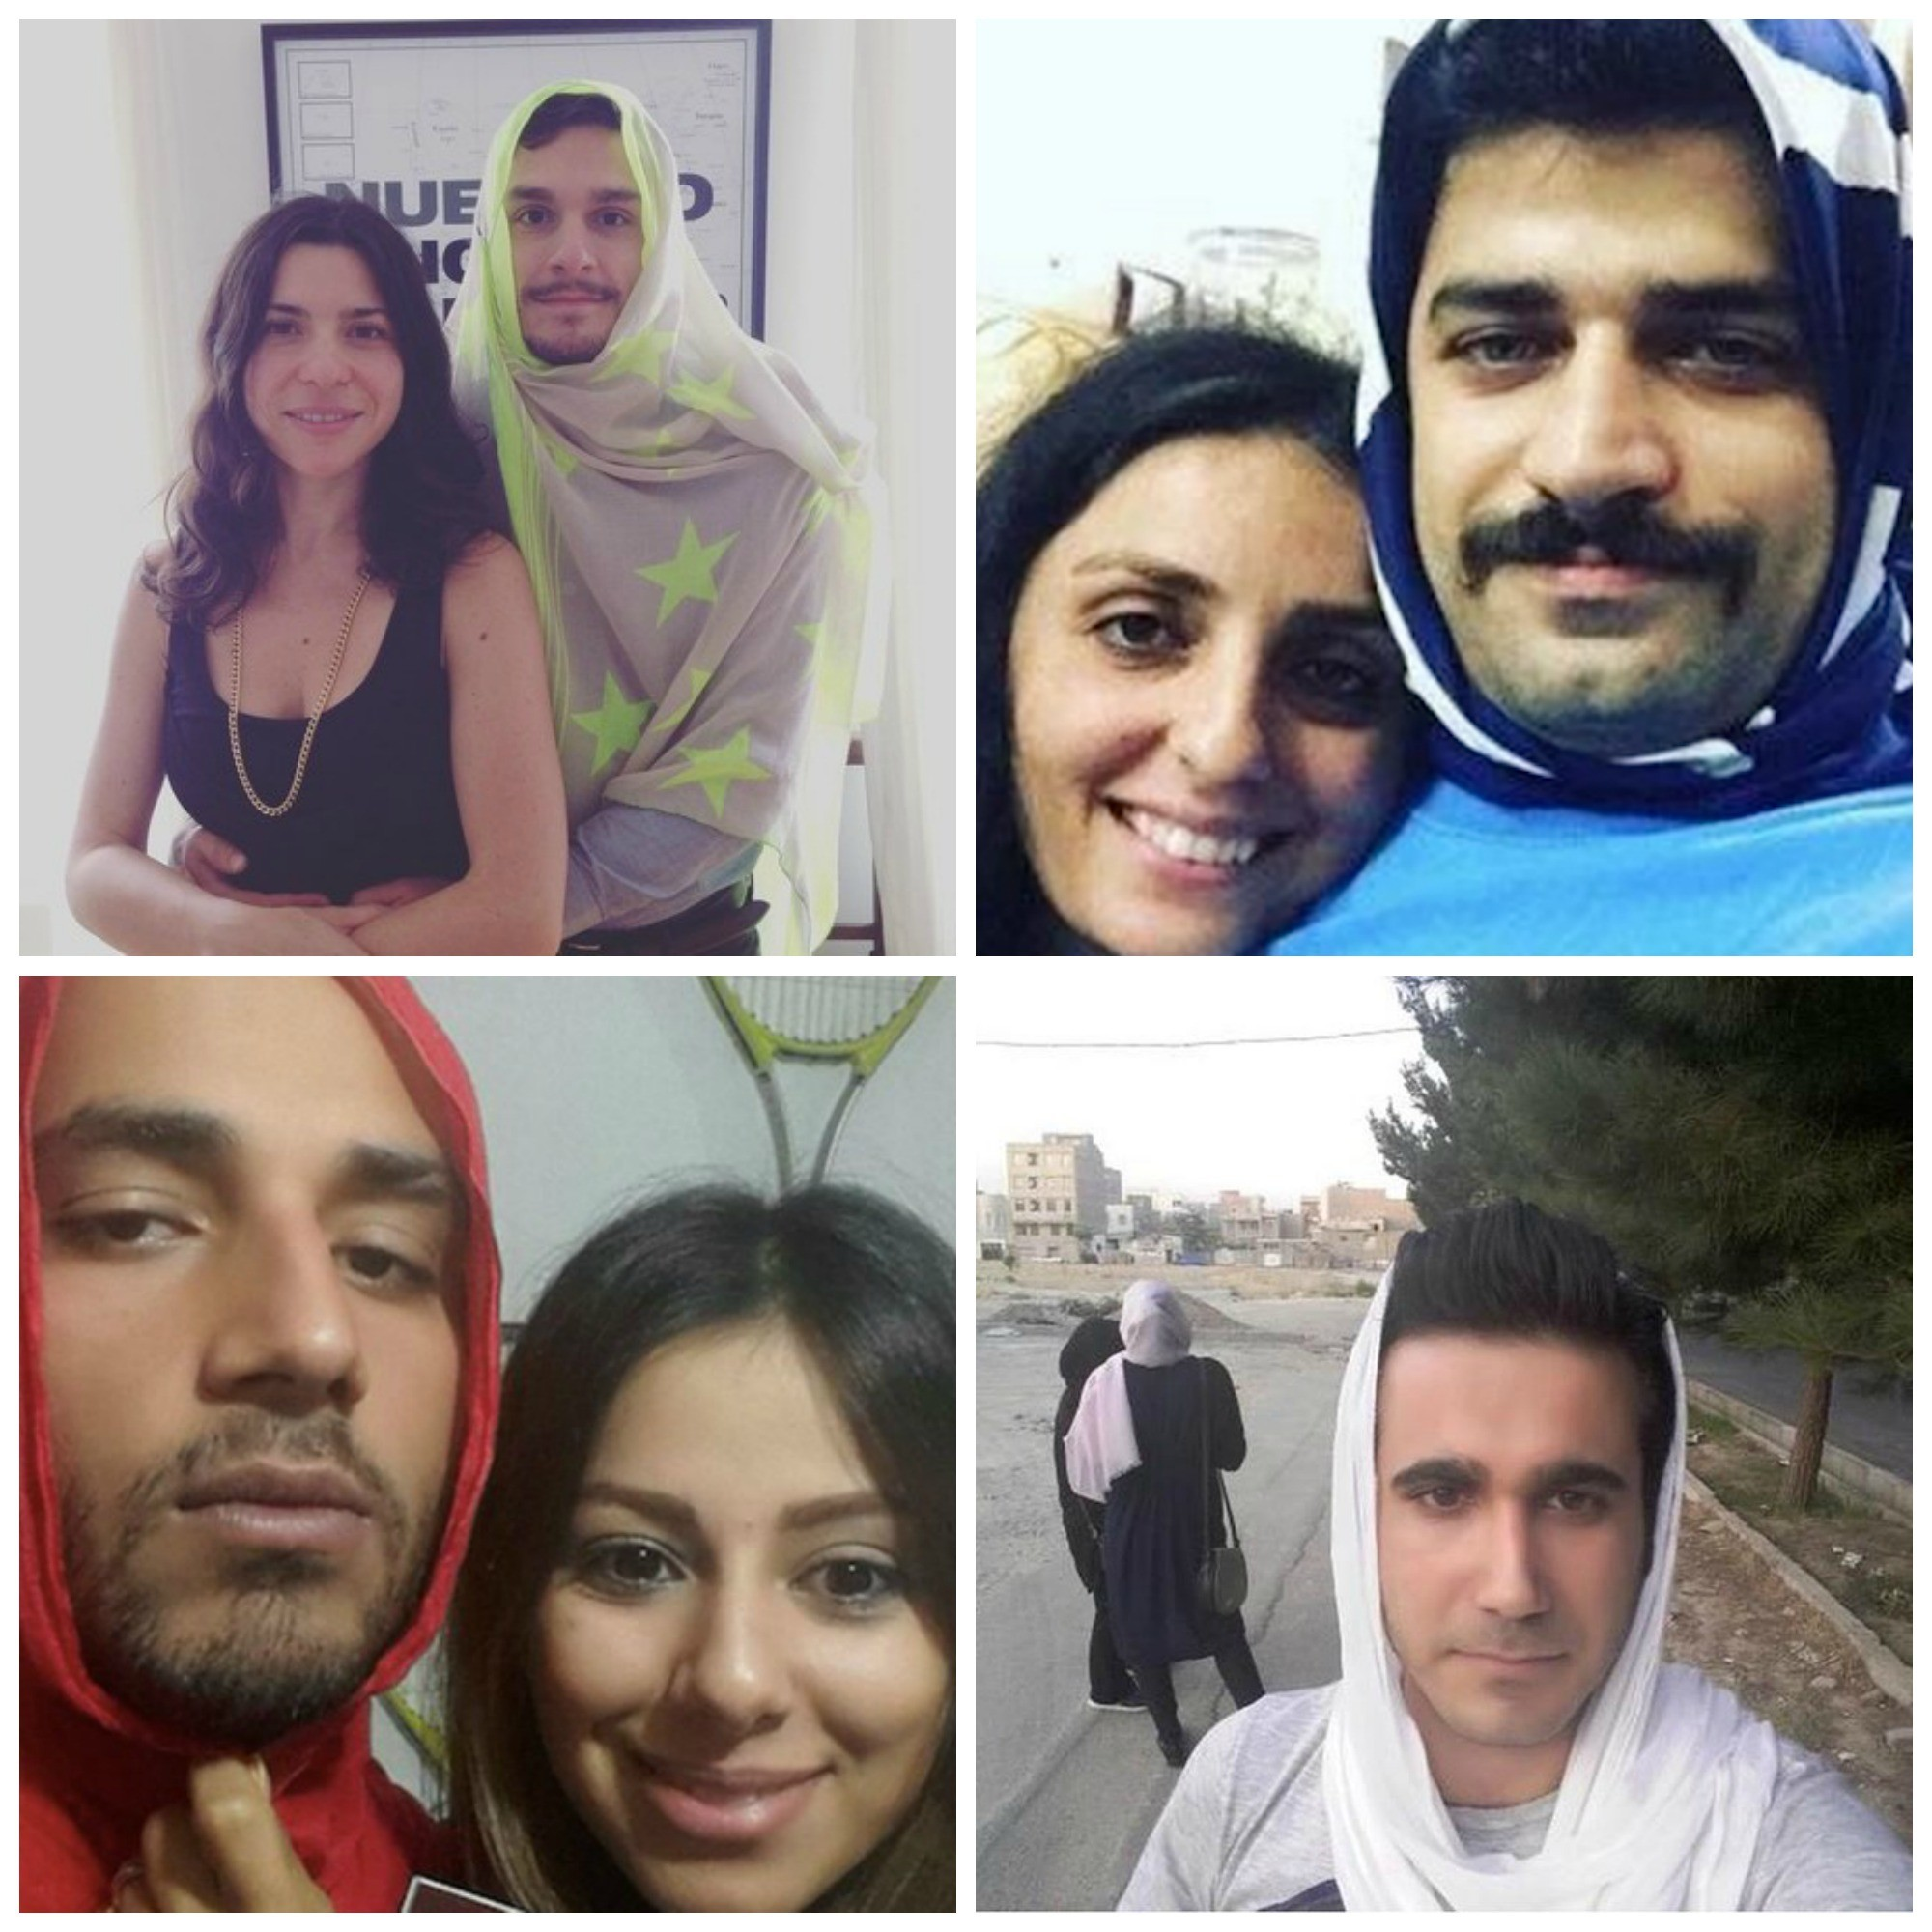 Men in Iran are sharing pictures of themselves wearing hijabs